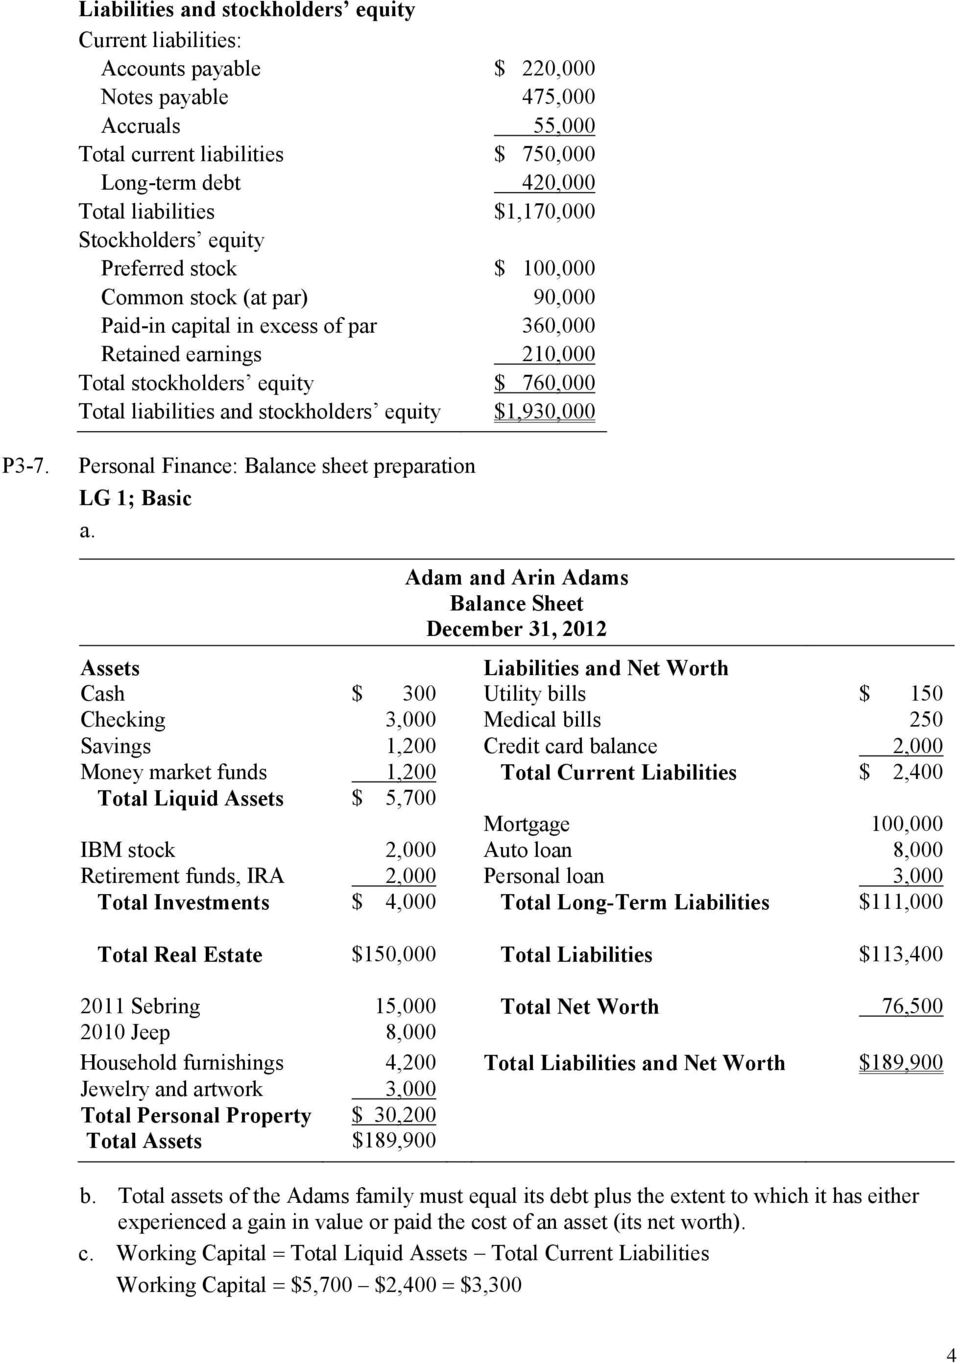 liabilities and stockholders equity $1,930,000 P3-7.